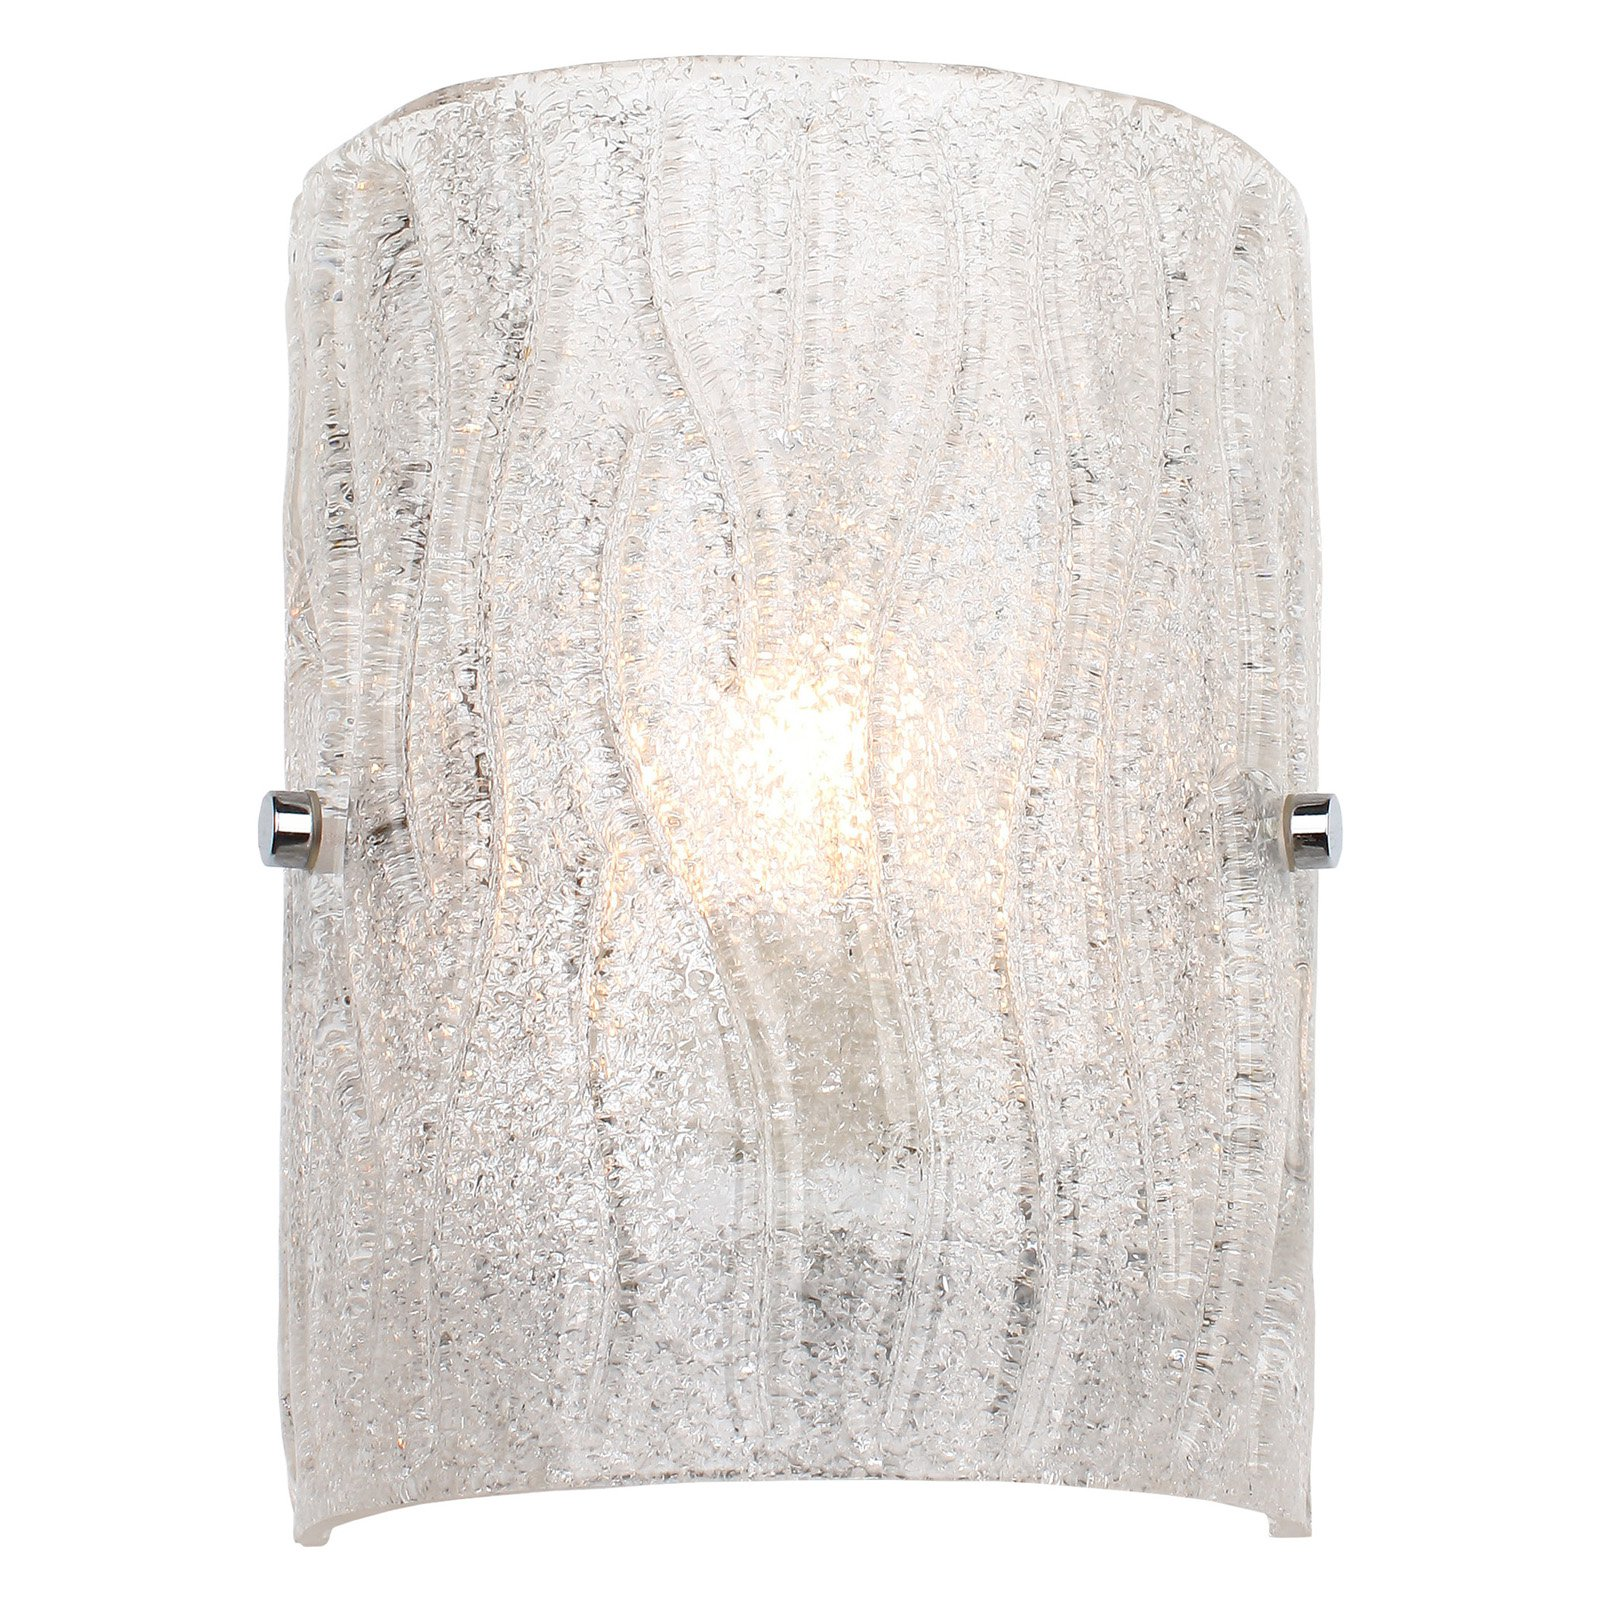 Varaluz Brilliance 1-Light Wall Sconce - 6.75W in. Chrome